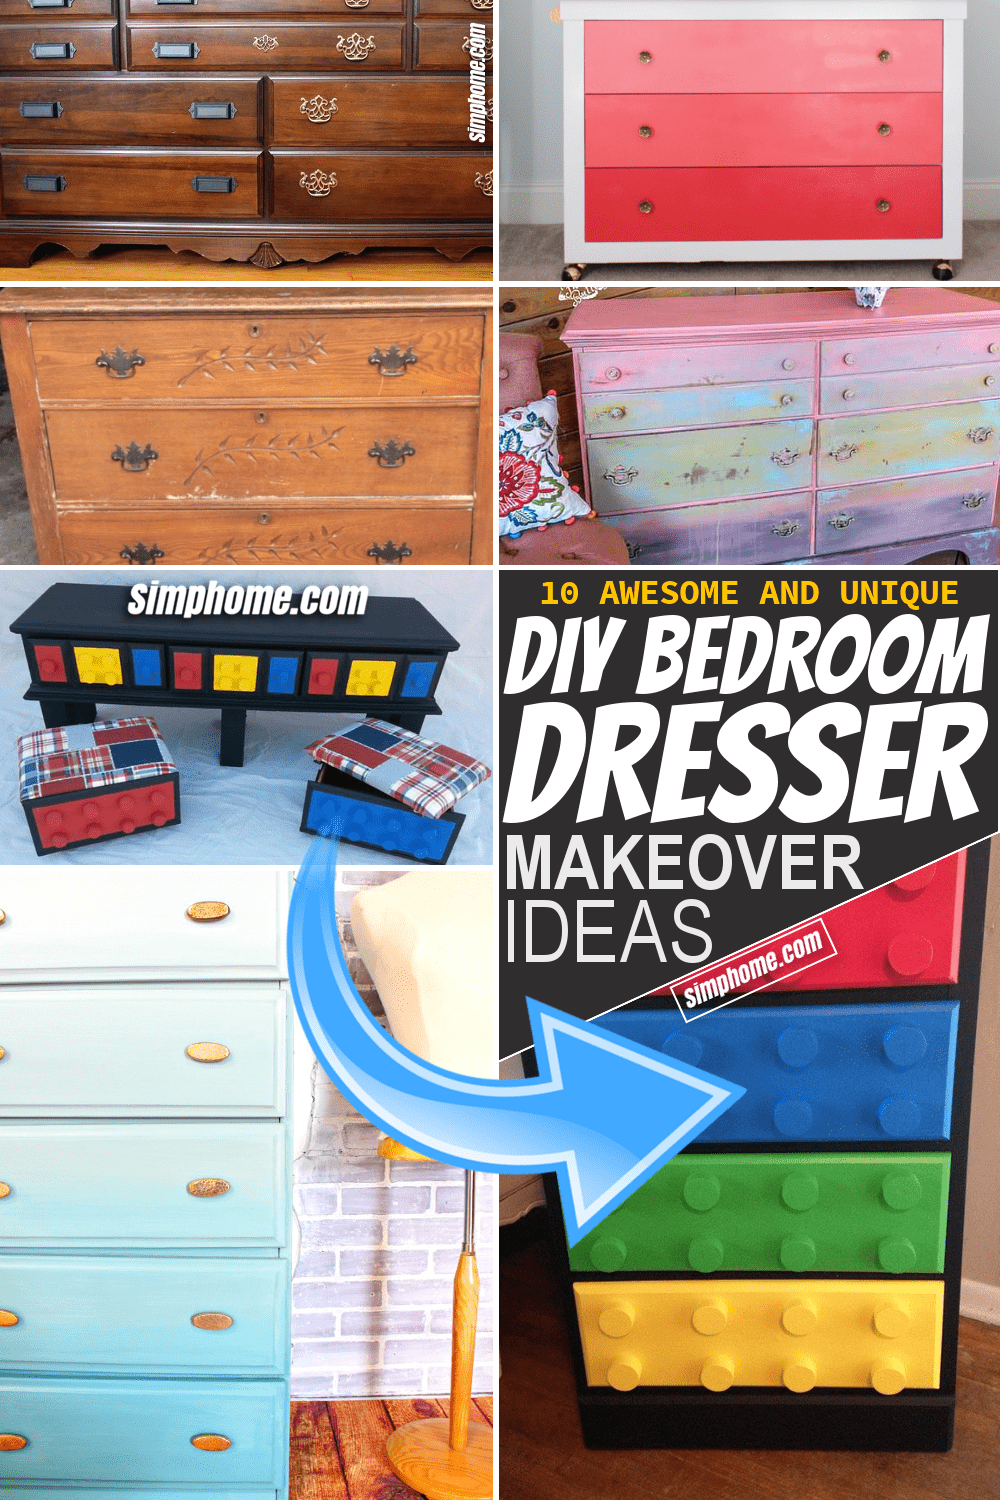 Simphome.com 10 Unique DIY Bedroom Dresser Makeover Featured Image Pinterest